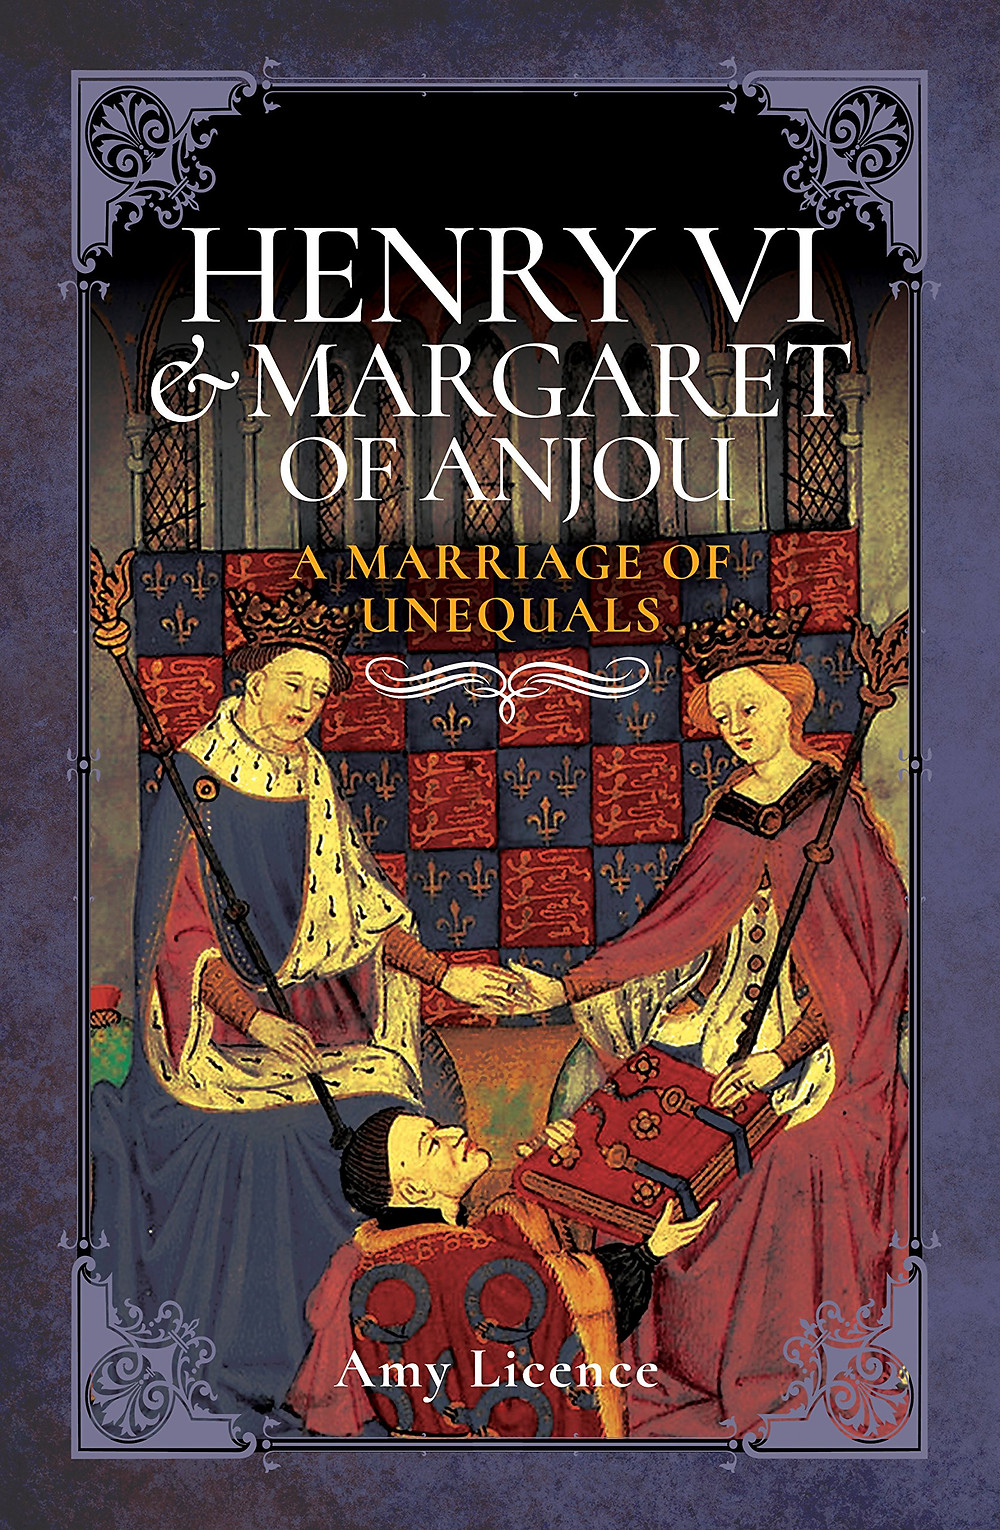 Henry VI & Margaret of Anjou - A marriage of unequals, paperback book by Amy Licence